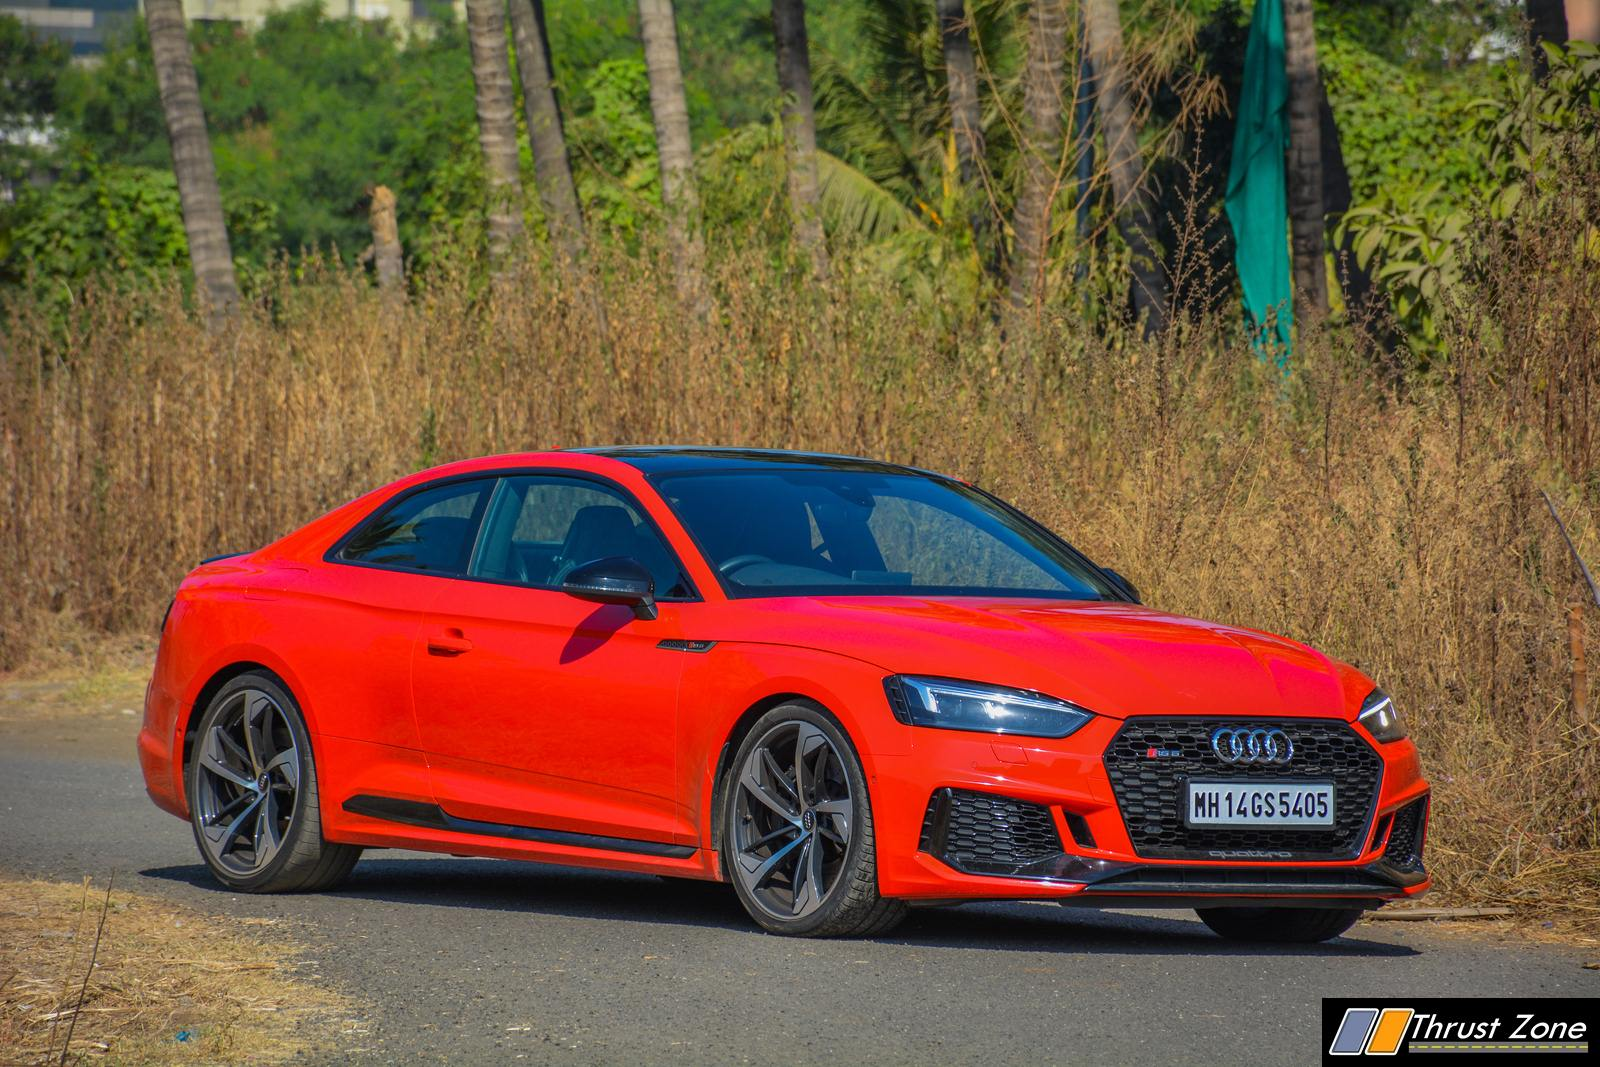 https://www.thrustzone.com/wp-content/uploads/2018/12/2018-Audi-RS5-INDIA-REVIEW-4.jpg